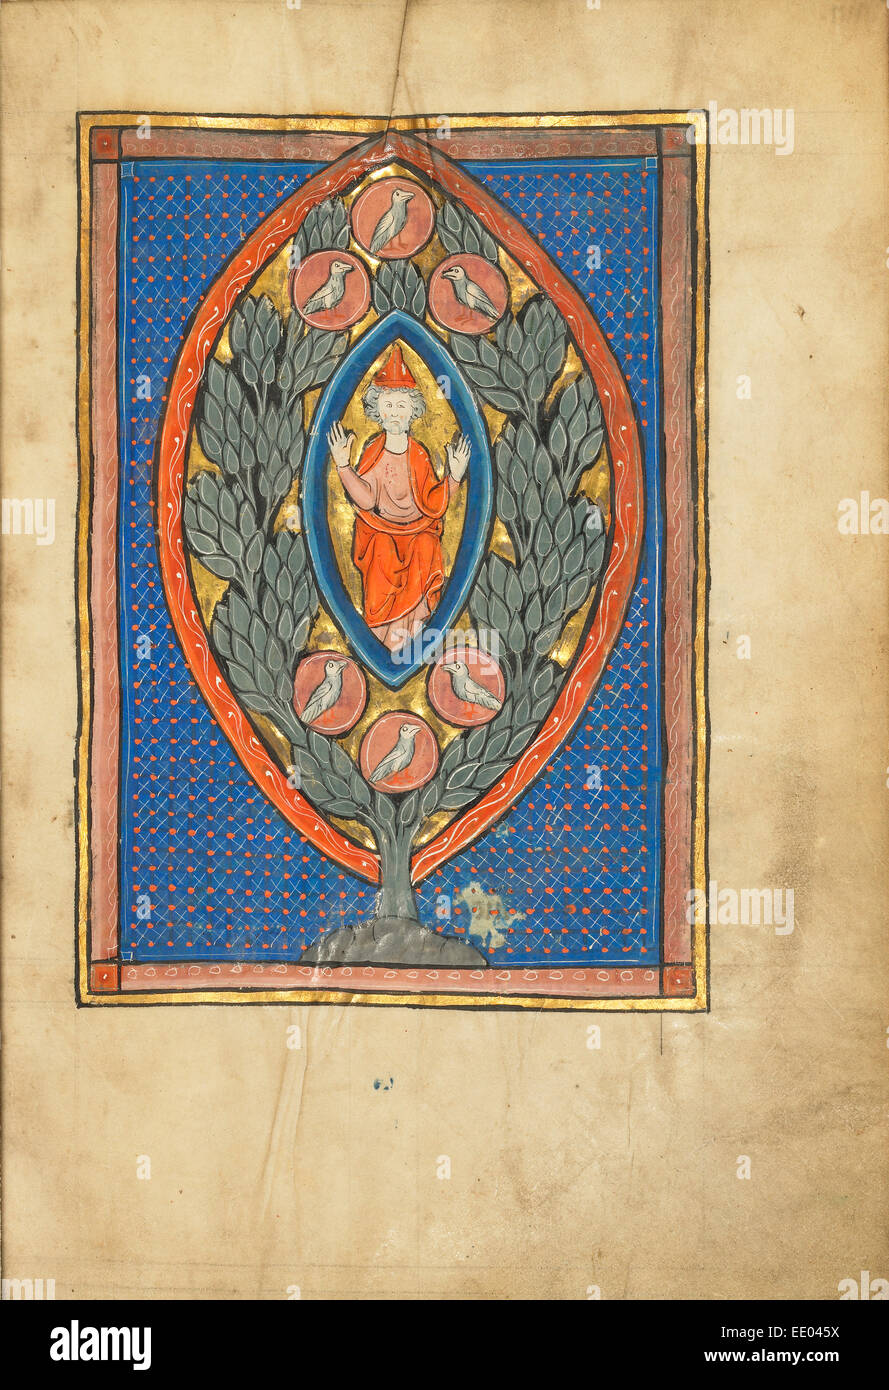 A Man Enthroned within a Mandorla in a Tree; Unknown; Thérouanne ?, France (formerly Flanders), Europe - Stock Image